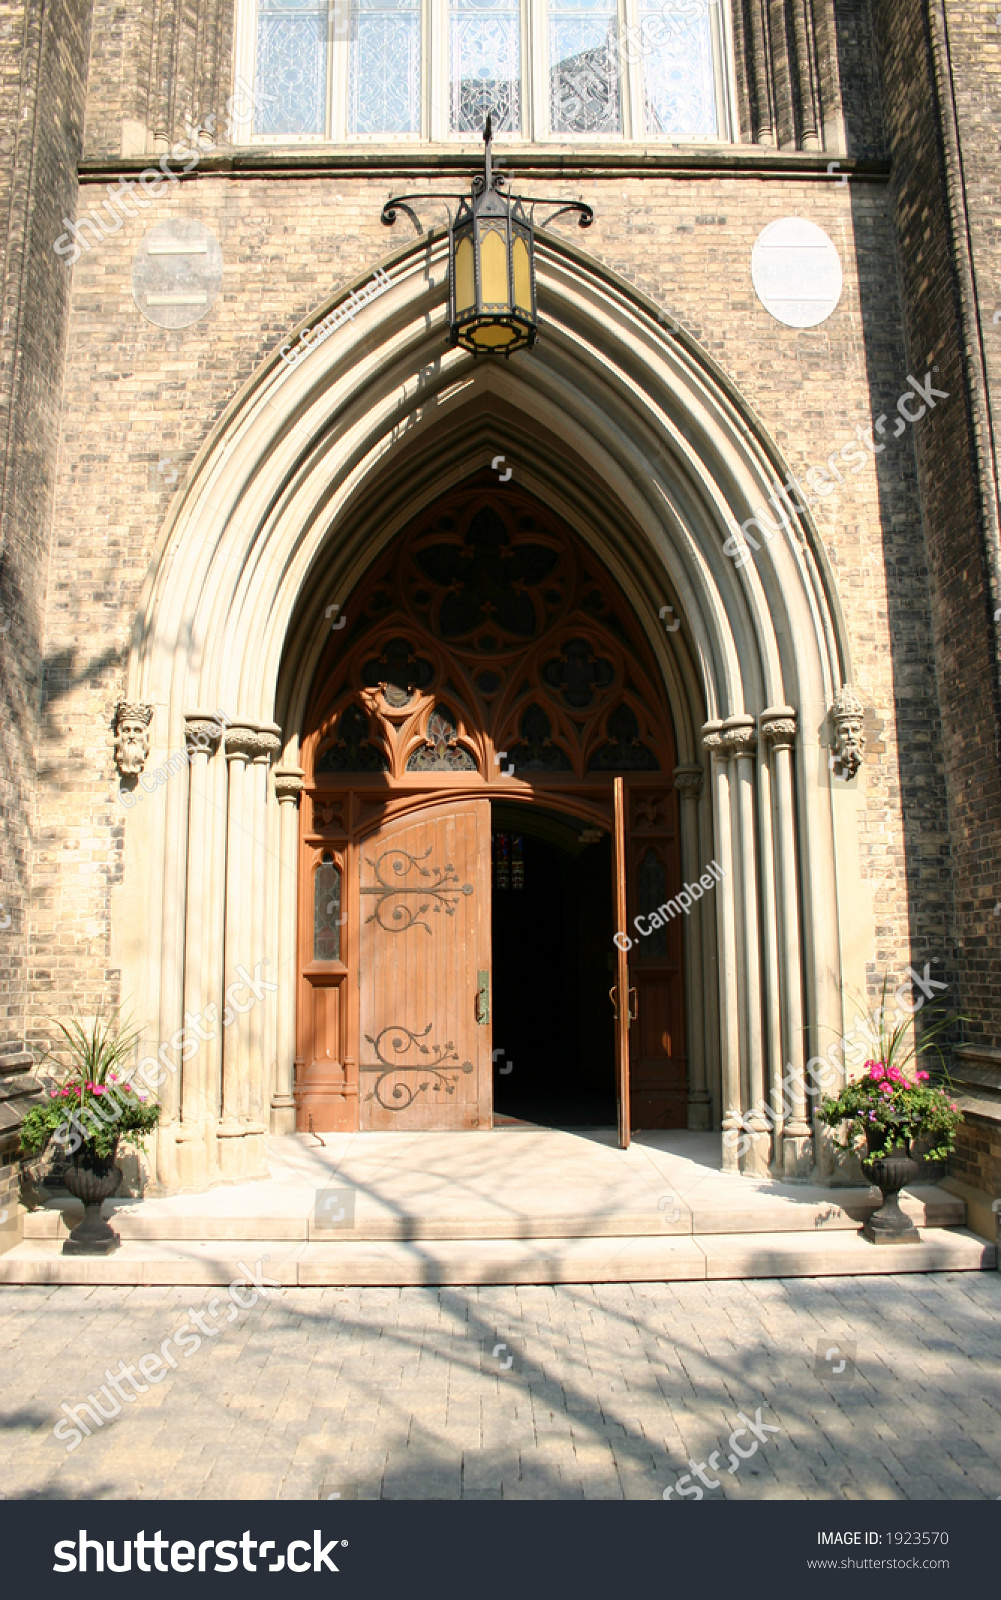 Le Meilleur Church Door Open Stock Photo 1923570 Shutterstock Ce Mois Ci